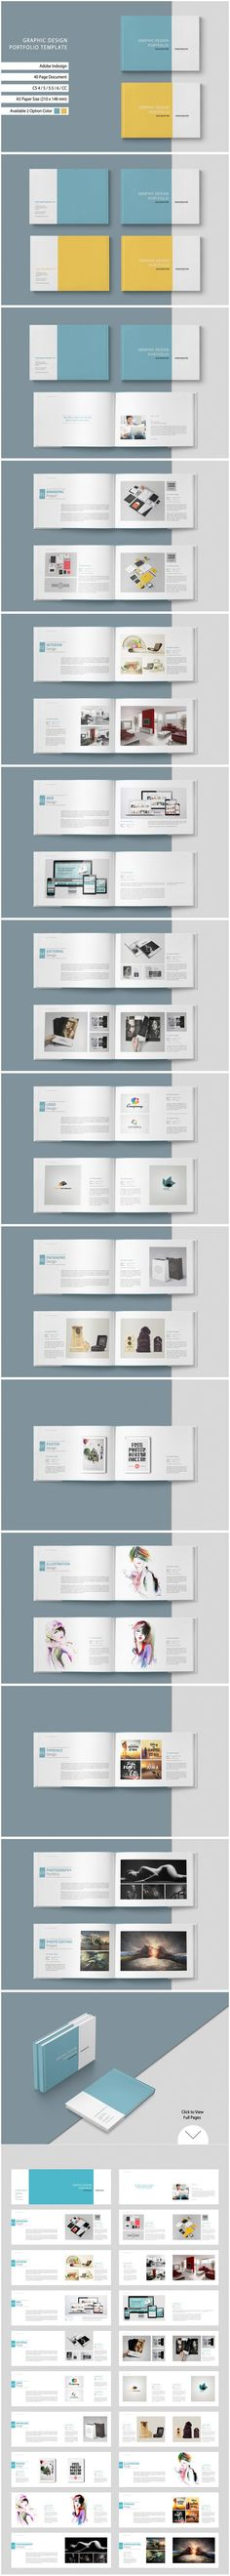 This is 40 page minimal brochure template